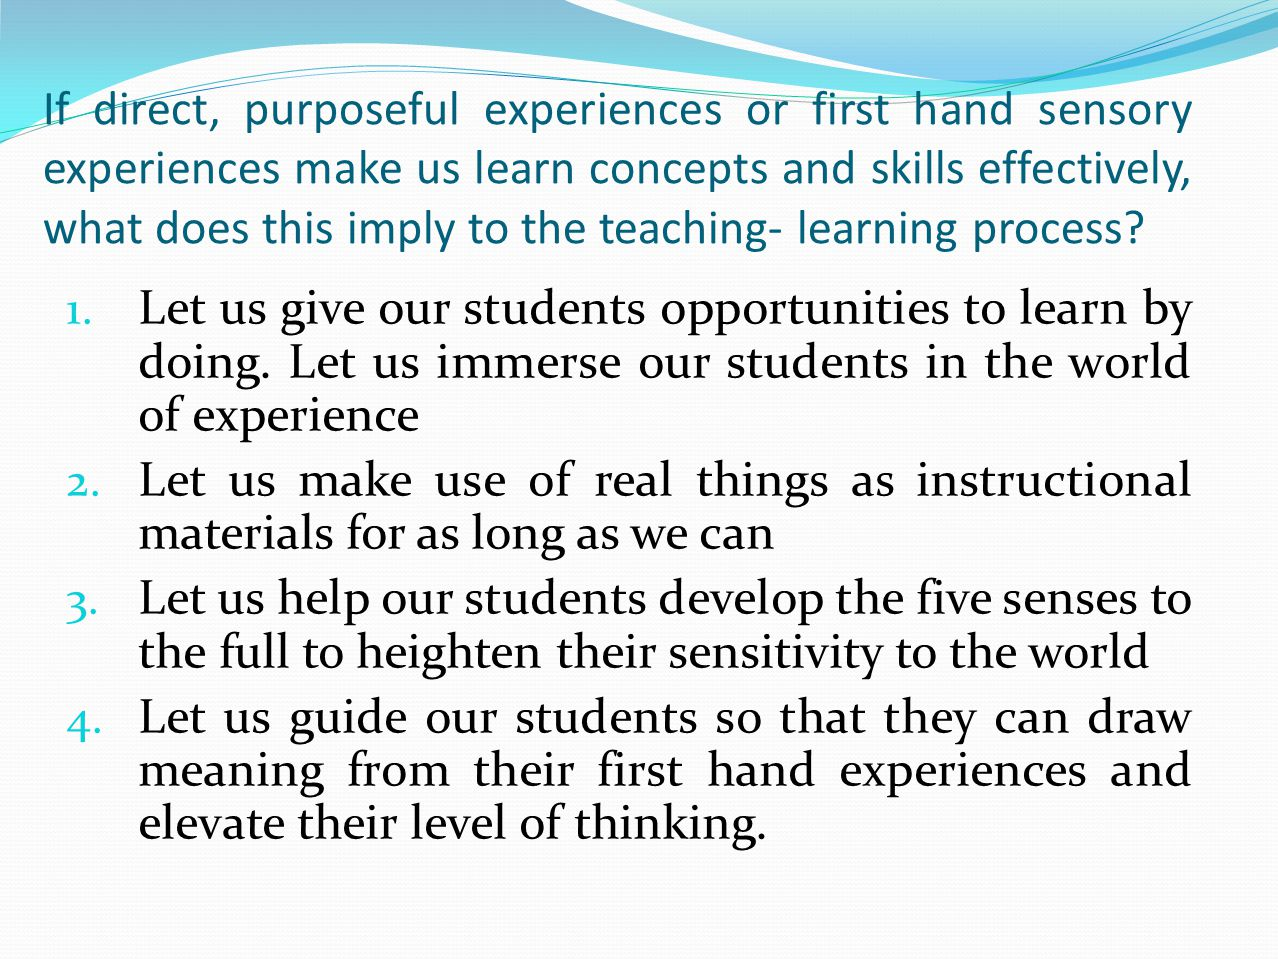 If direct, purposeful experiences or first hand sensory experiences make us learn concepts and skills effectively, what does this imply to the teaching- learning process